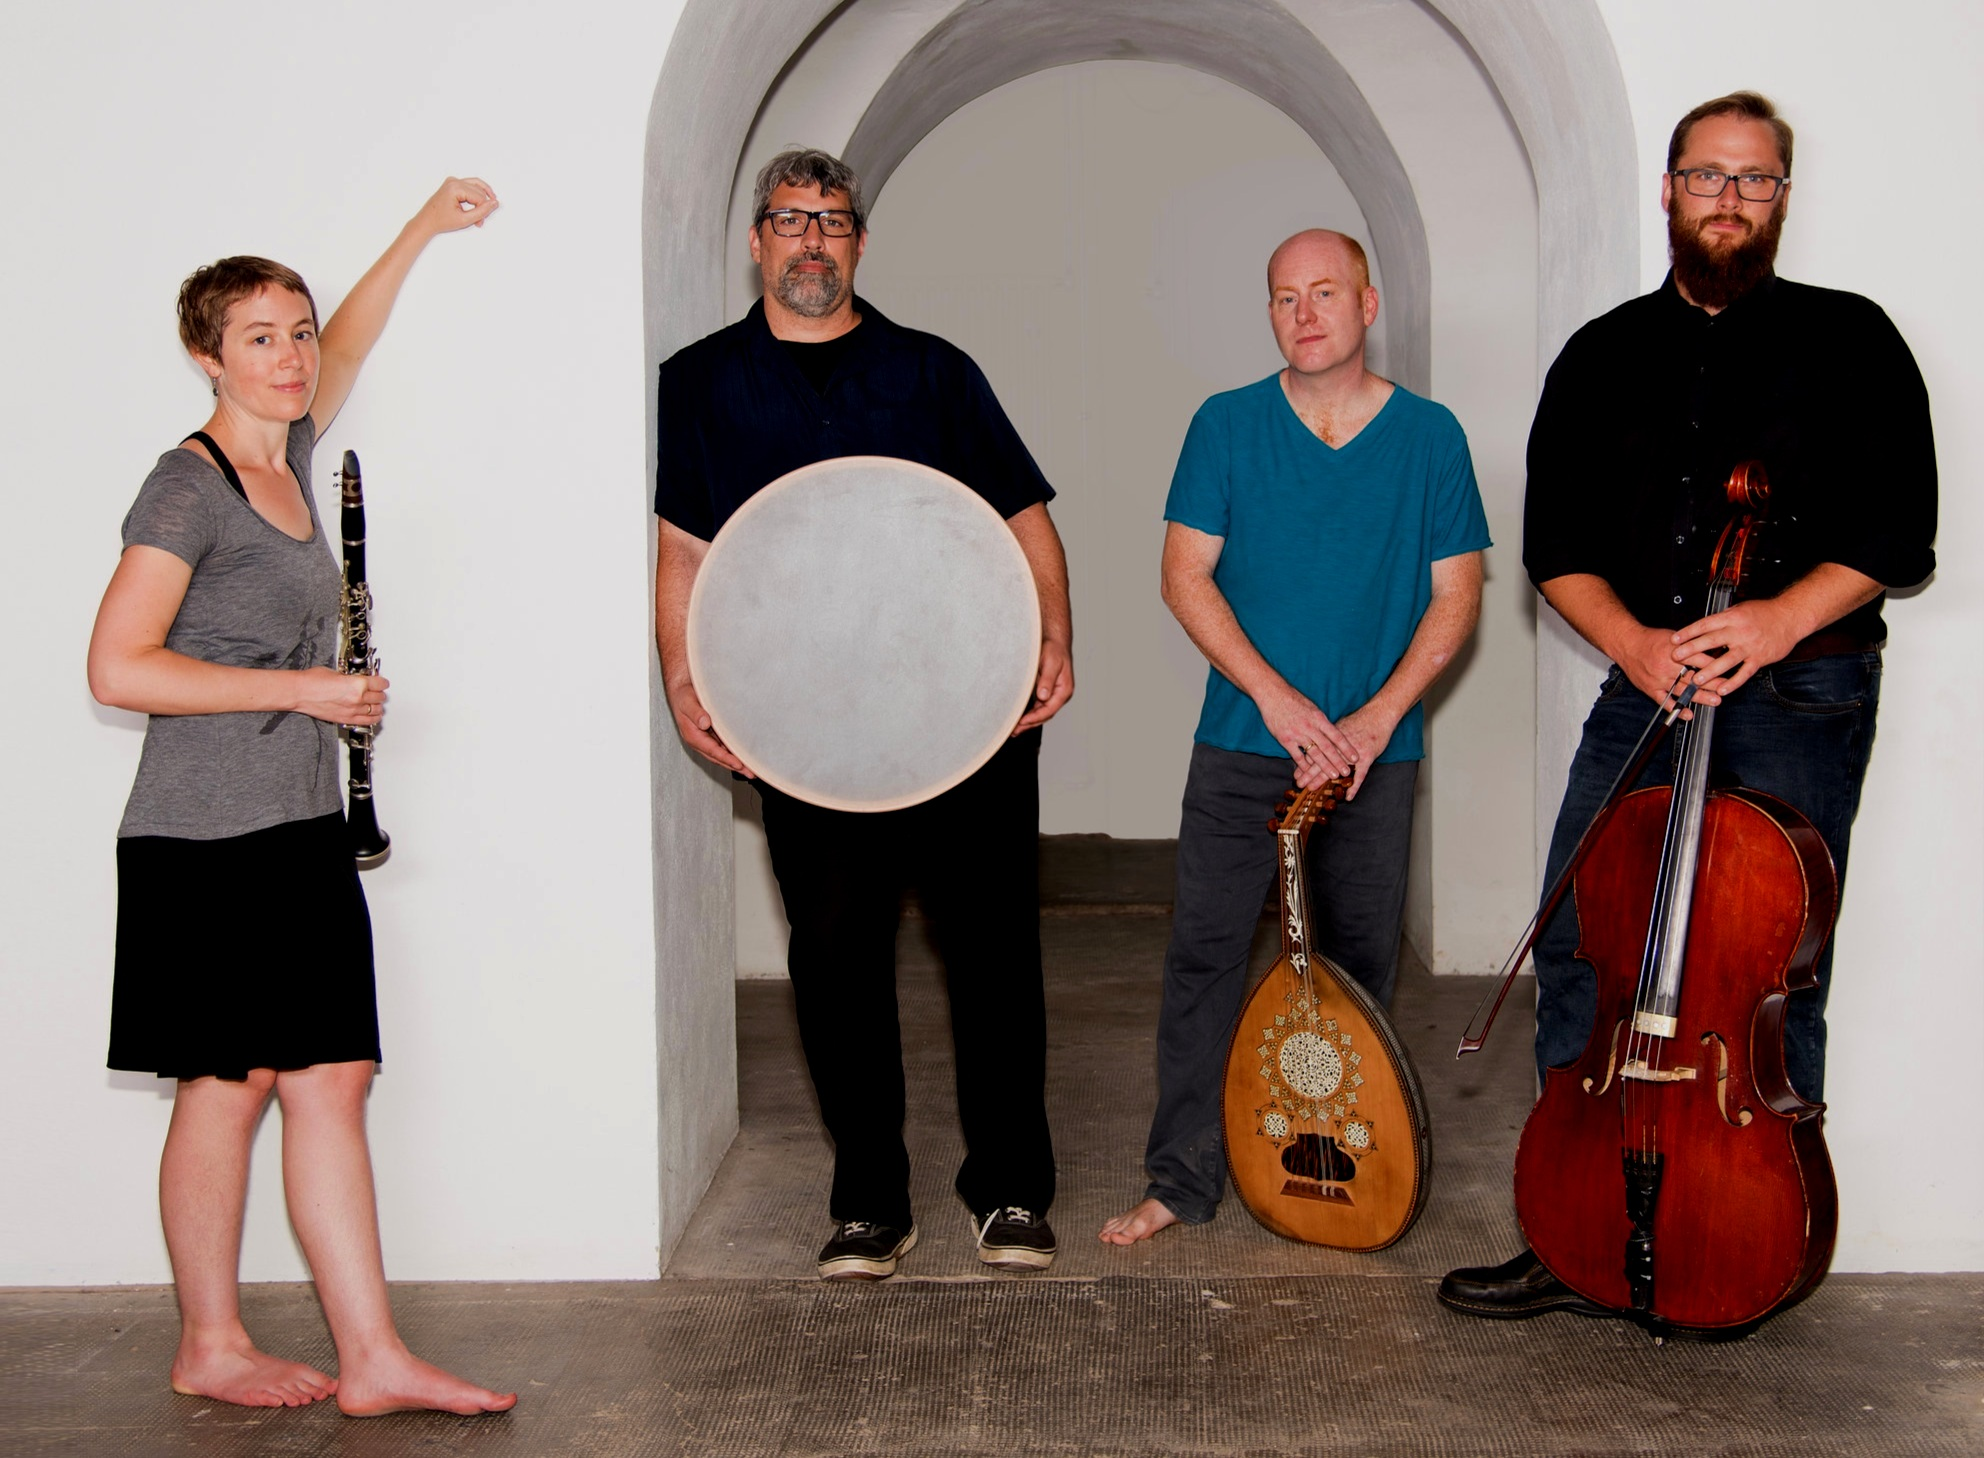 Dunham Shoe Factory - Original Chamber music inspired by tradition from around the world.